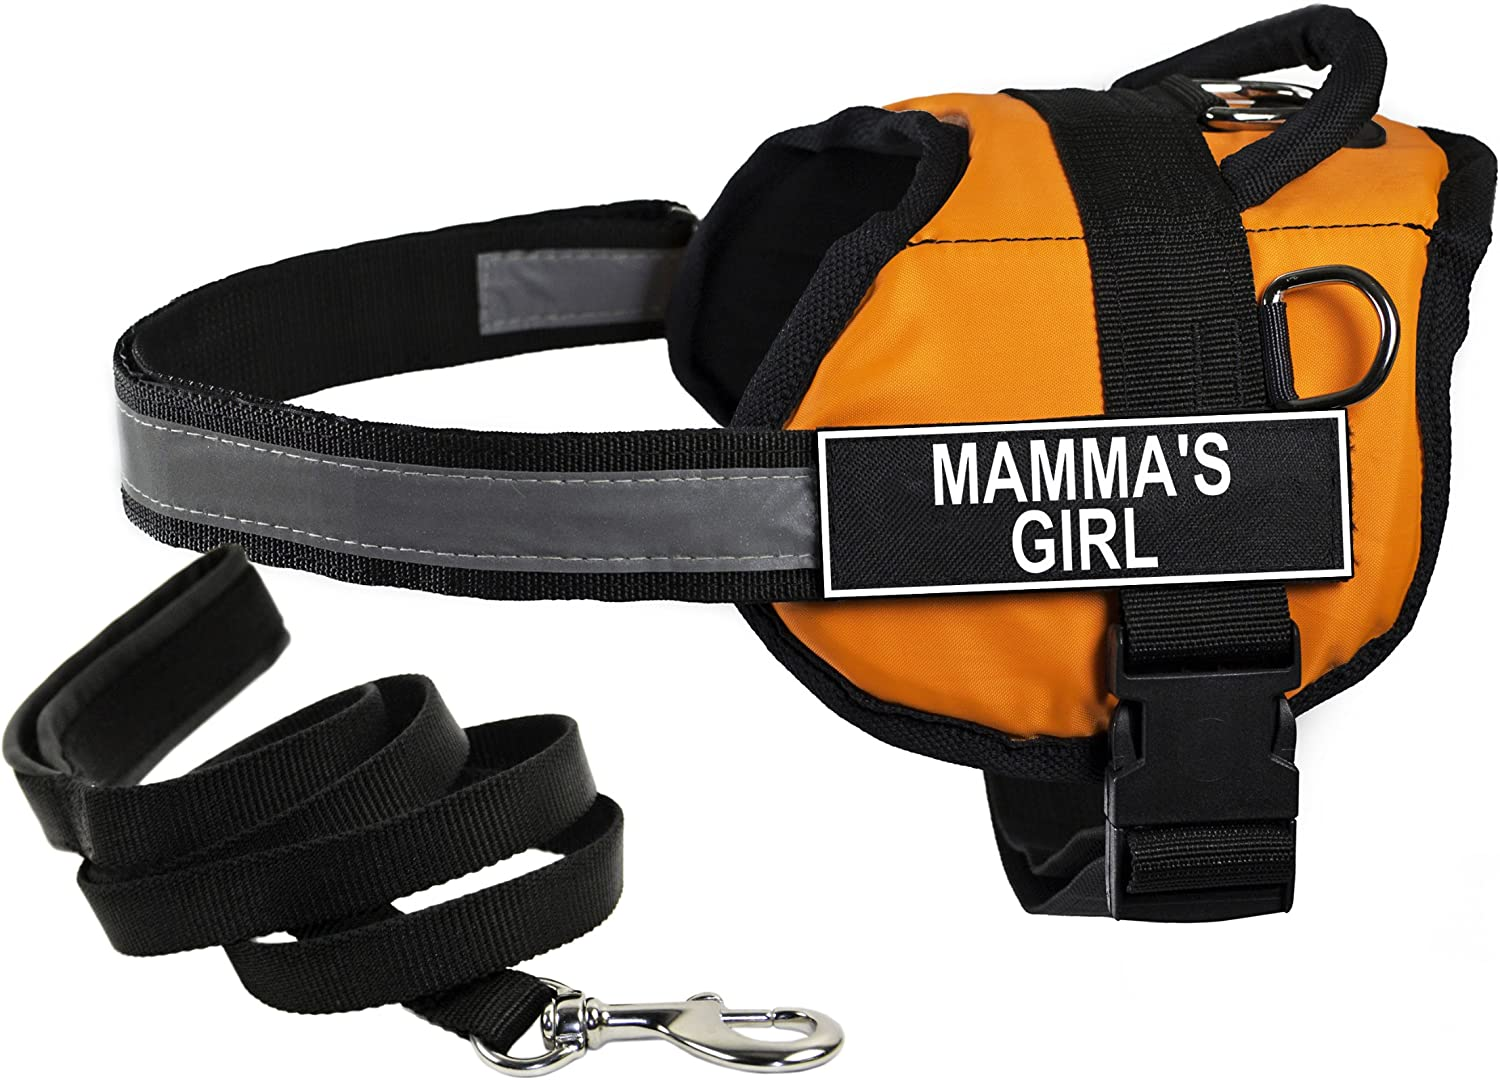 Dean & Tyler's DT Works orange MAMMA'S GIRL Harness with Chest Padding, XSmall, and Black 6 ft Padded Puppy Leash.